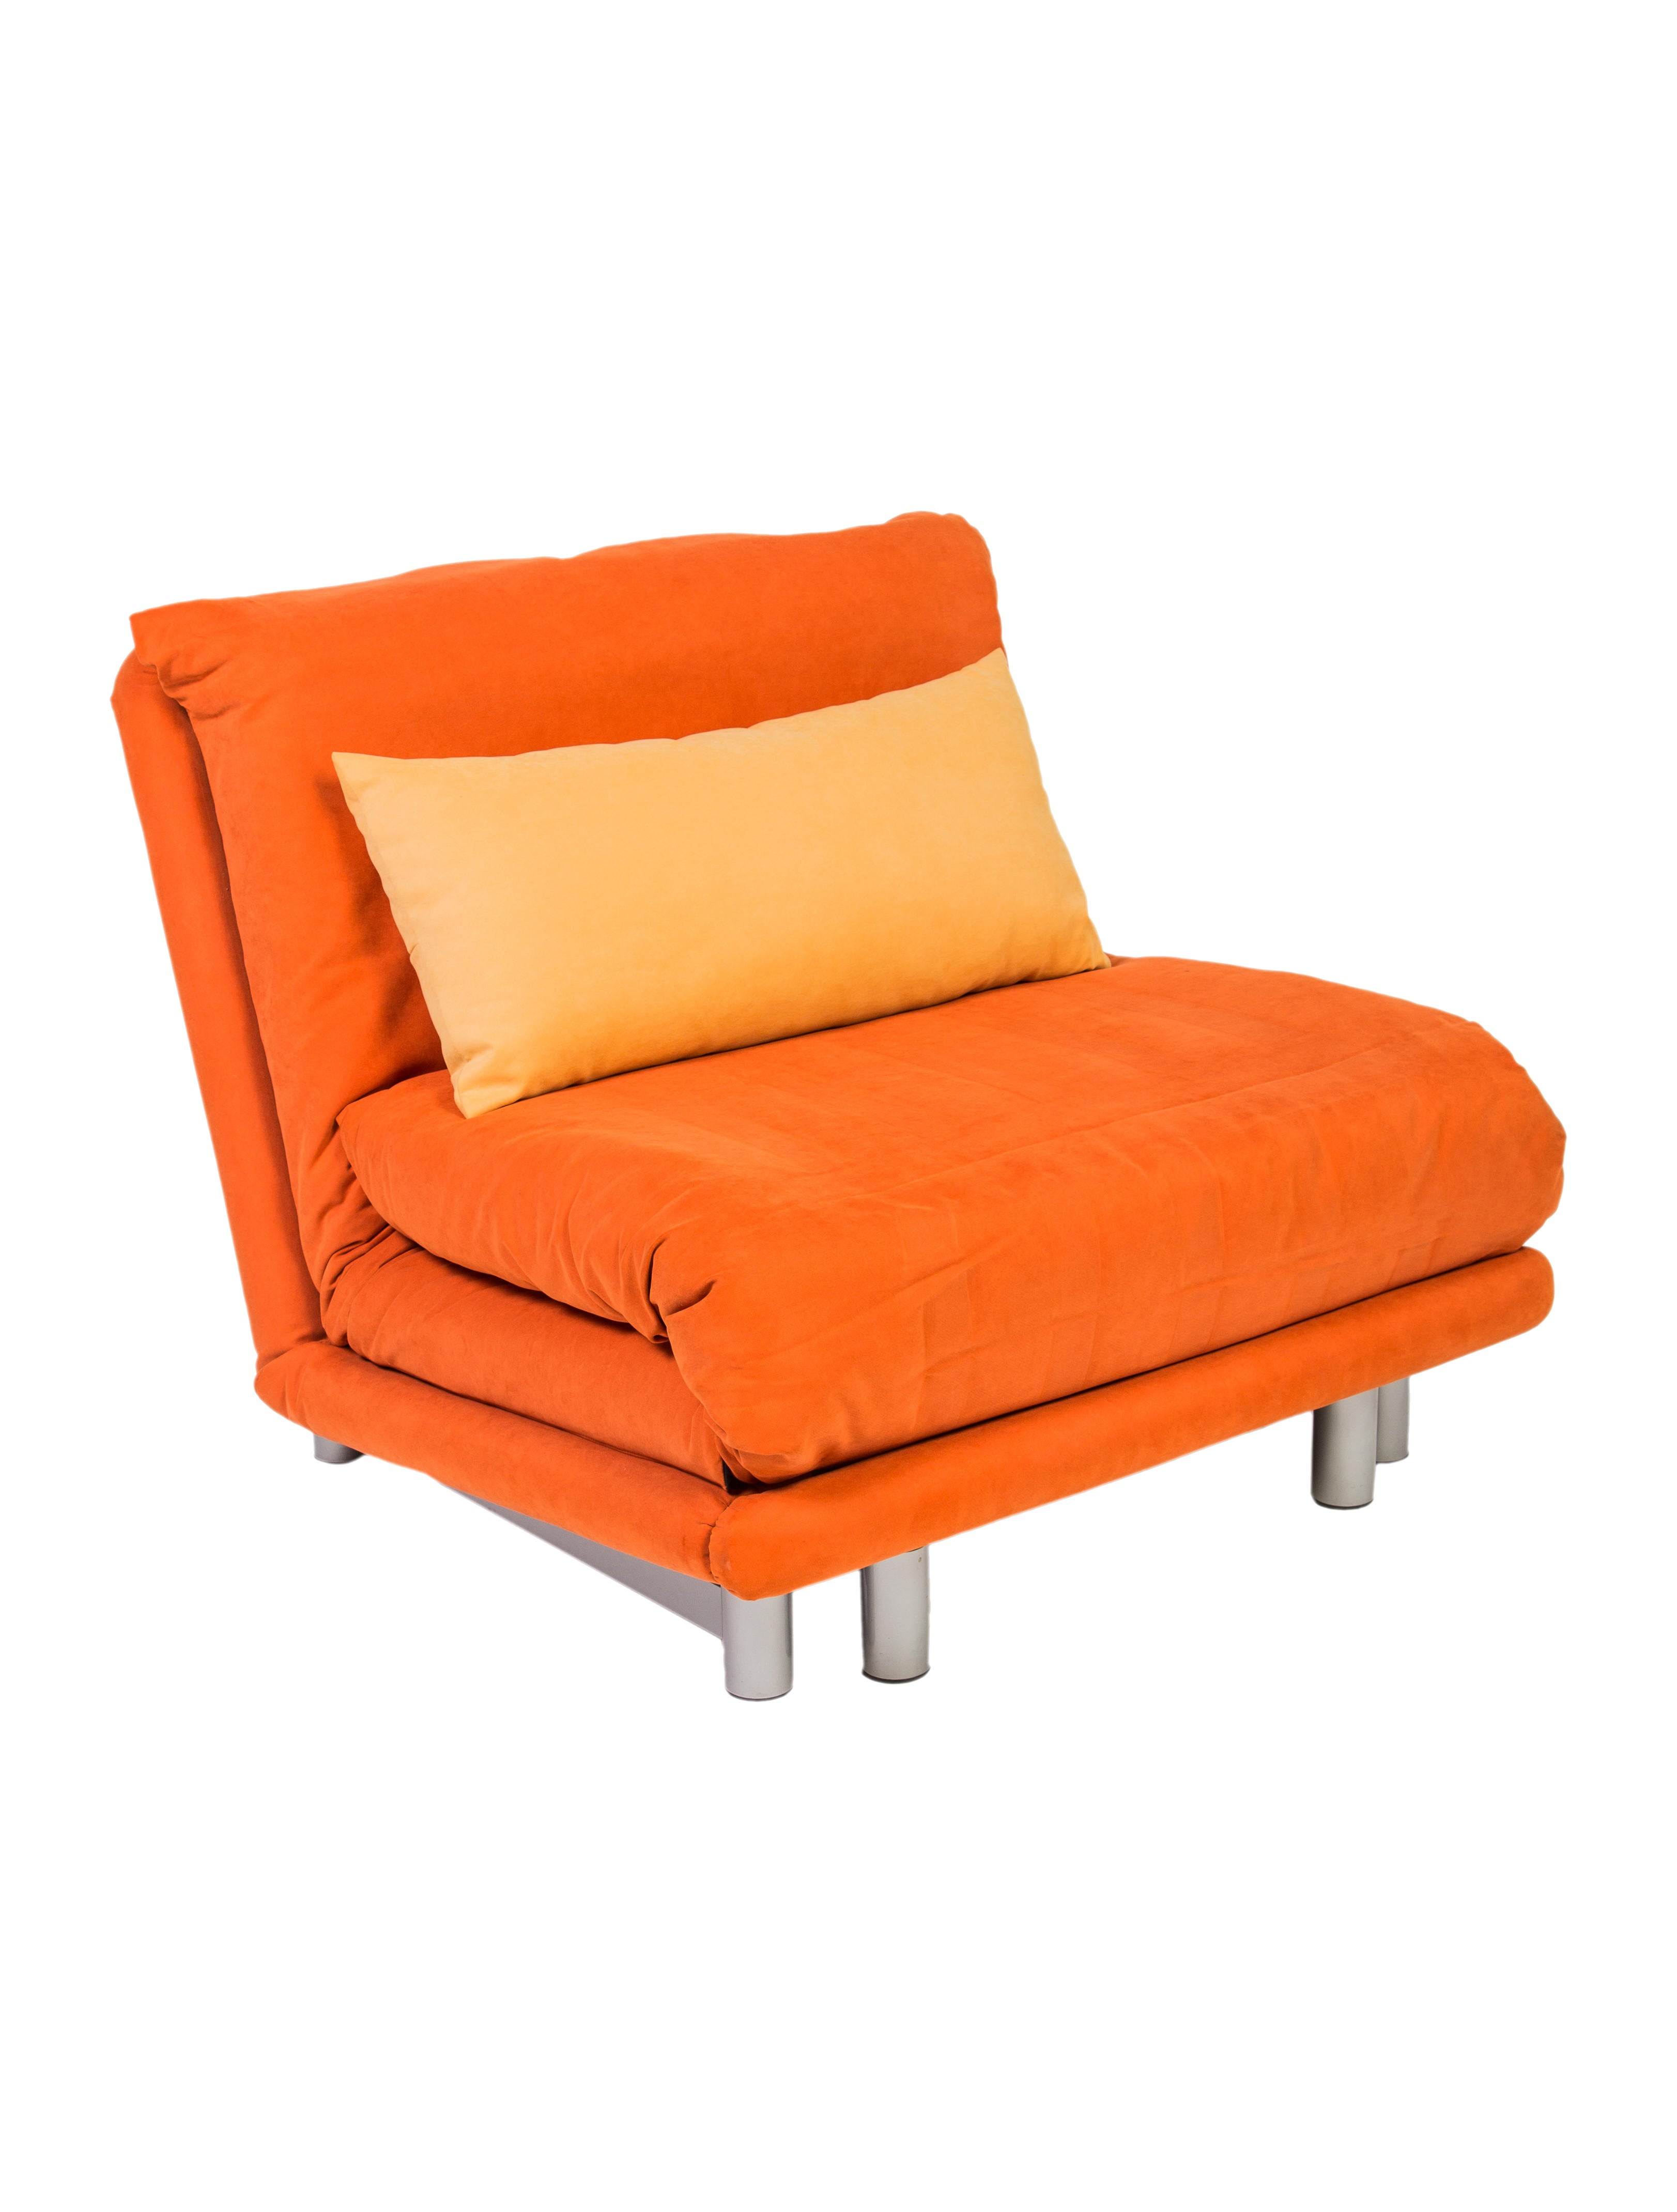 Ligne Roset Multy Sofa Bed Furniture RST20110 The RealReal